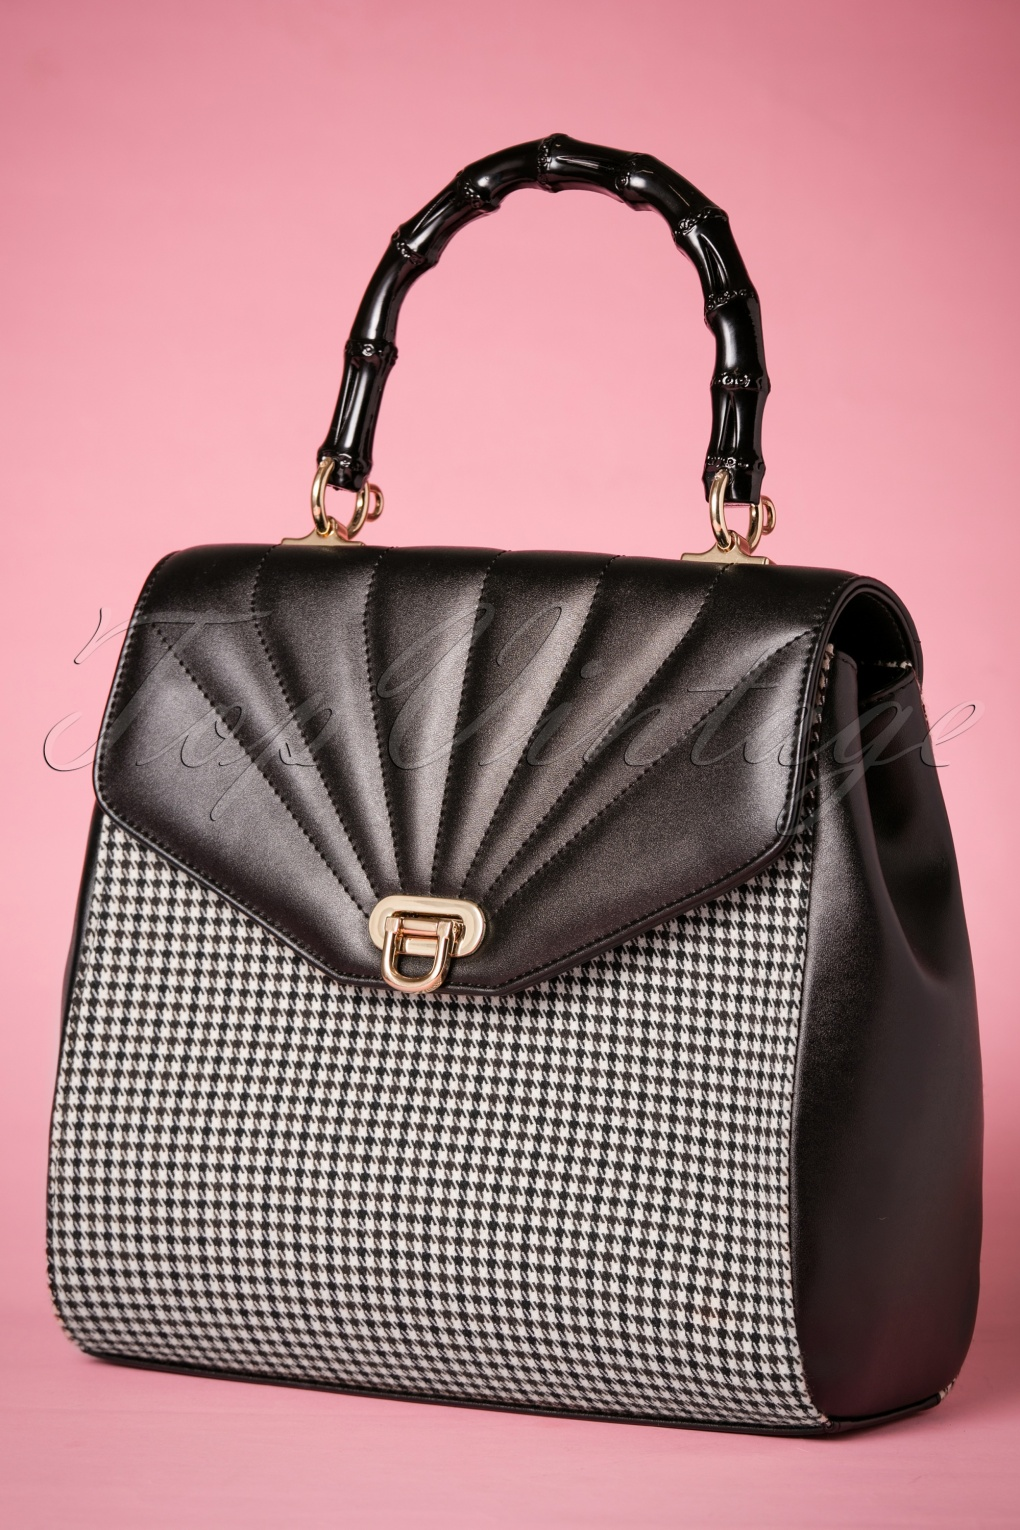 What Did Women Wear in the 1950s? 1950s Fashion Guide 50s Bamboo Lux Handbag in Houndstooth Black £41.74 AT vintagedancer.com